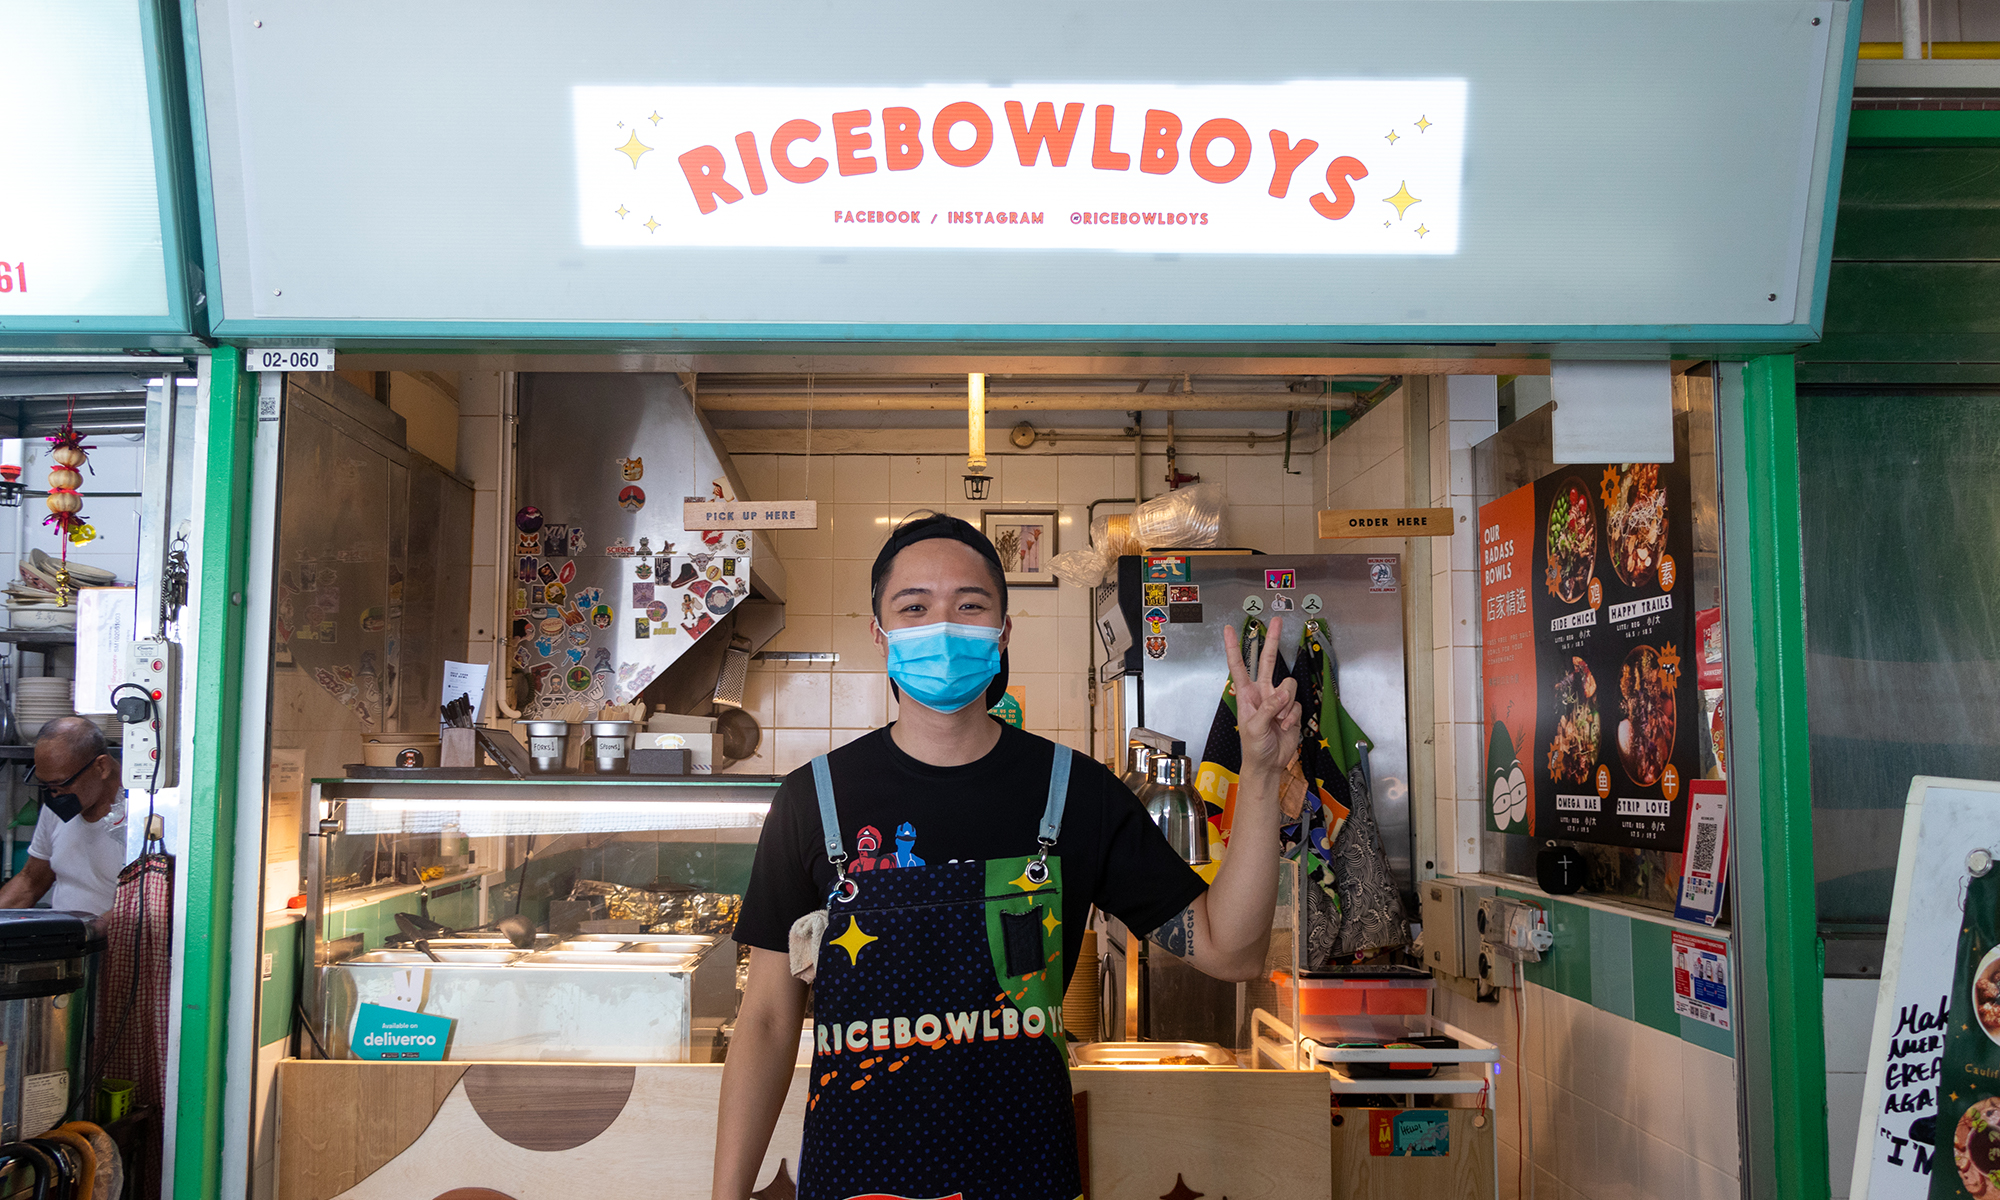 Healthy and shiok grain bowls from Rice Bowl Boys